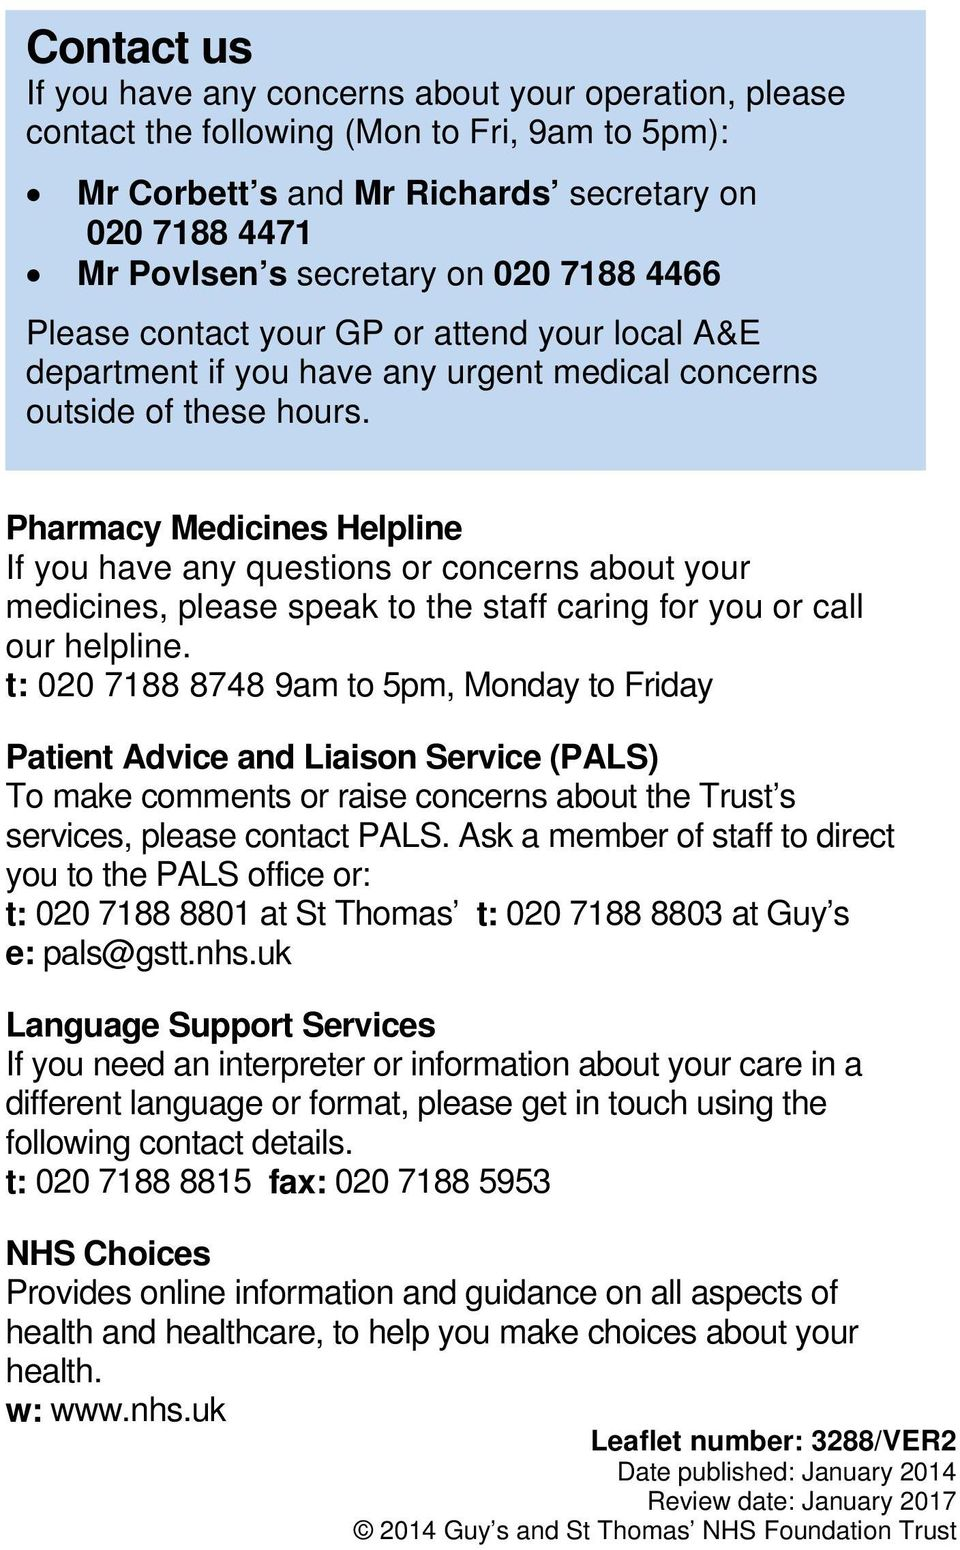 Pharmacy Medicines Helpline If you have any questions or concerns about your medicines, please speak to the staff caring for you or call our helpline.